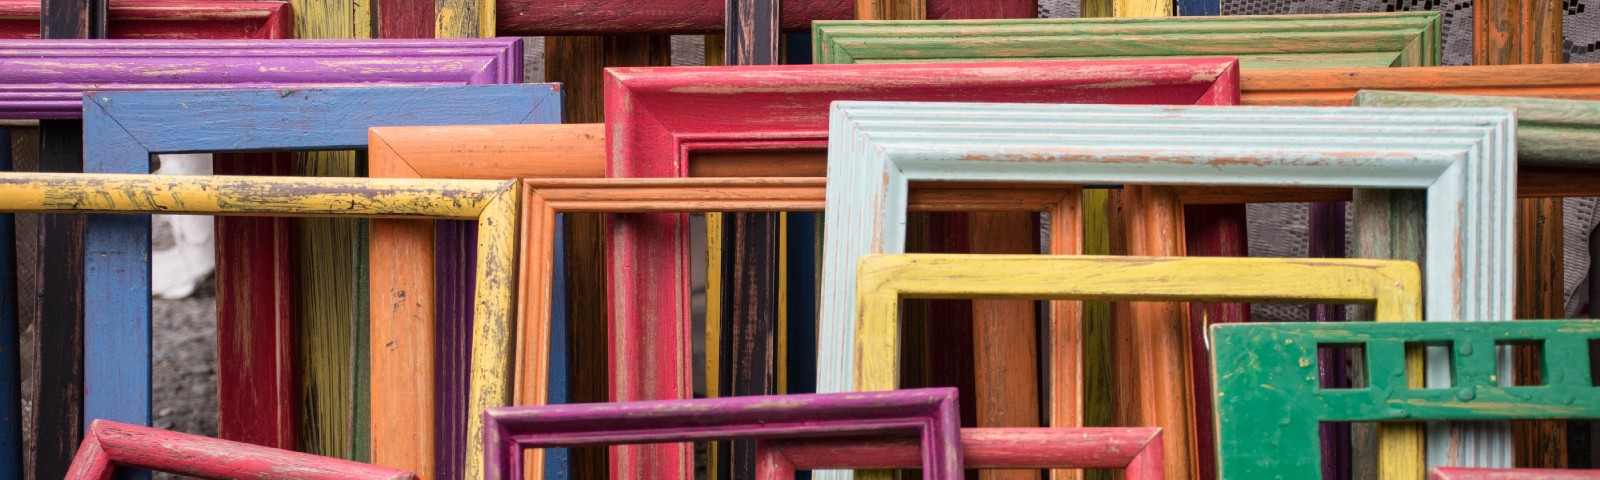 all sizes, shapes and colors of old wooden frames stacked against a wall and each other